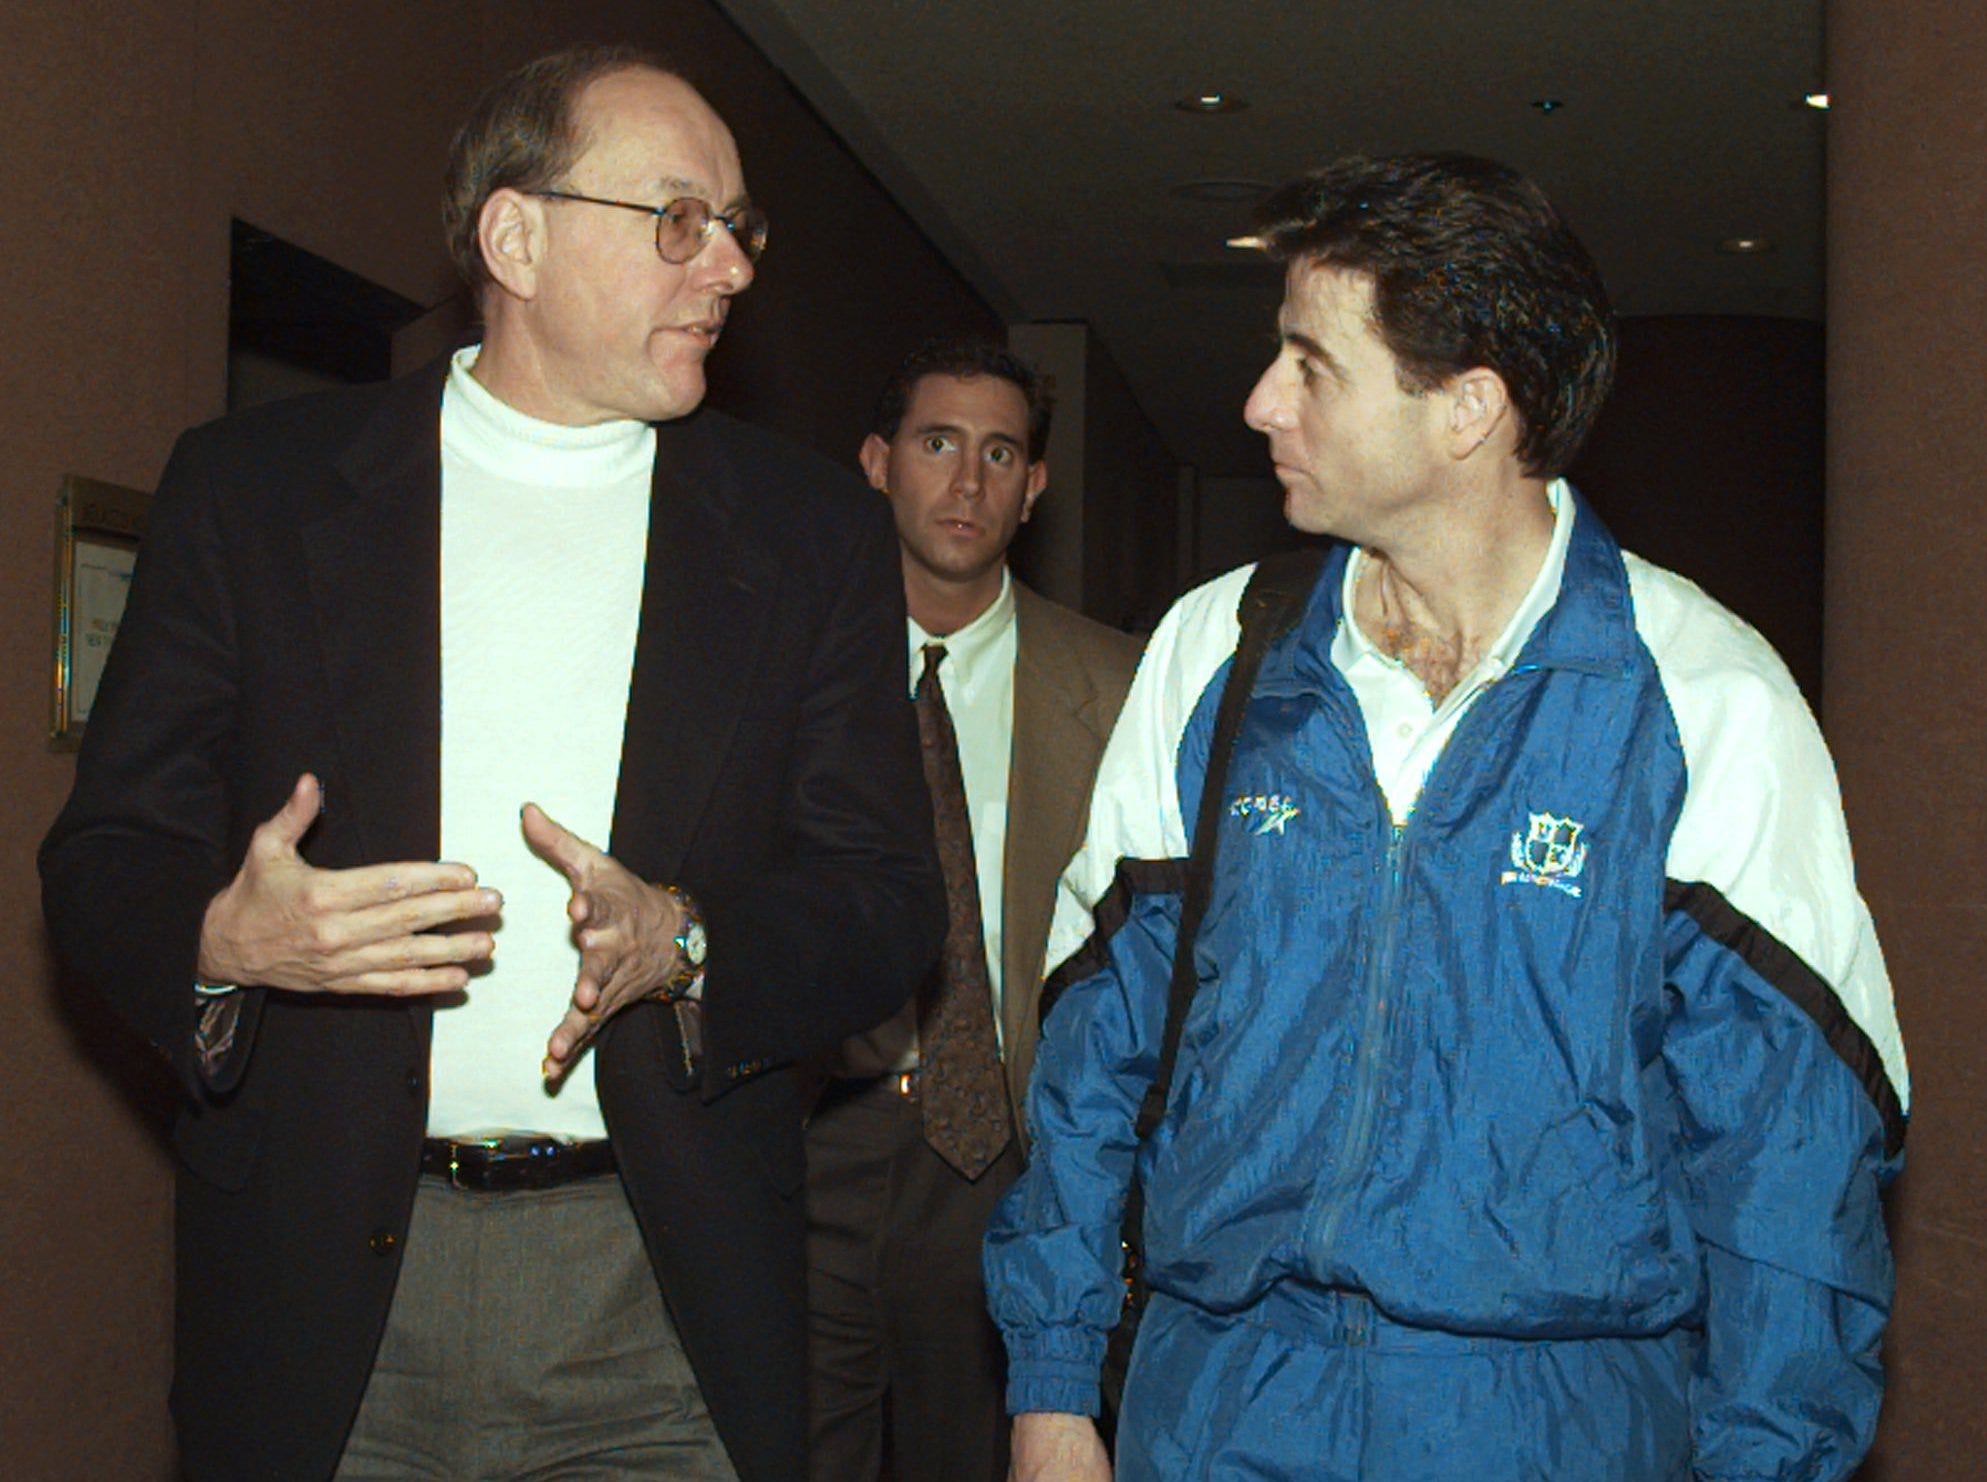 1996: Syracuse coach Jim Boeheim, left, and Kentucky coach Rick Pitino, right, talk as they walk together after an interview session in New York Sunday, March 31, 1996.  The two coaches and their teams face off Monday night in the NCAA college basketball championship game in nearby East Rutherford, N.J.